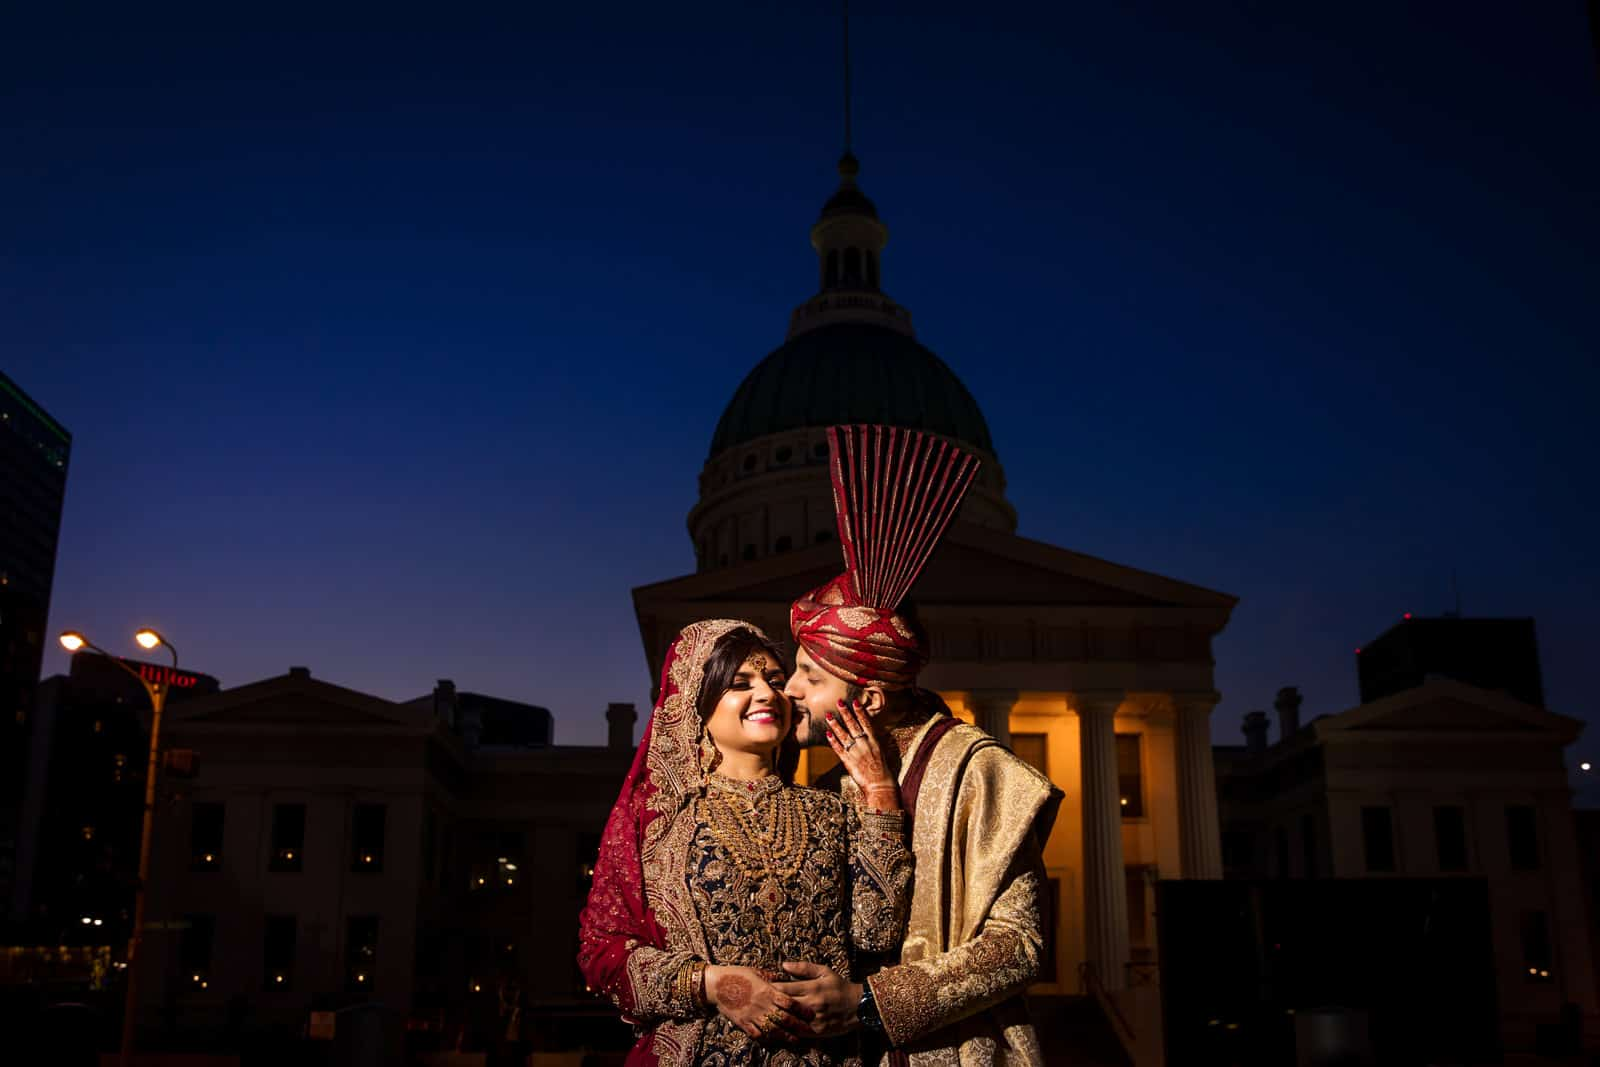 Indian wedding photographer portrait St. Louis turban hijab